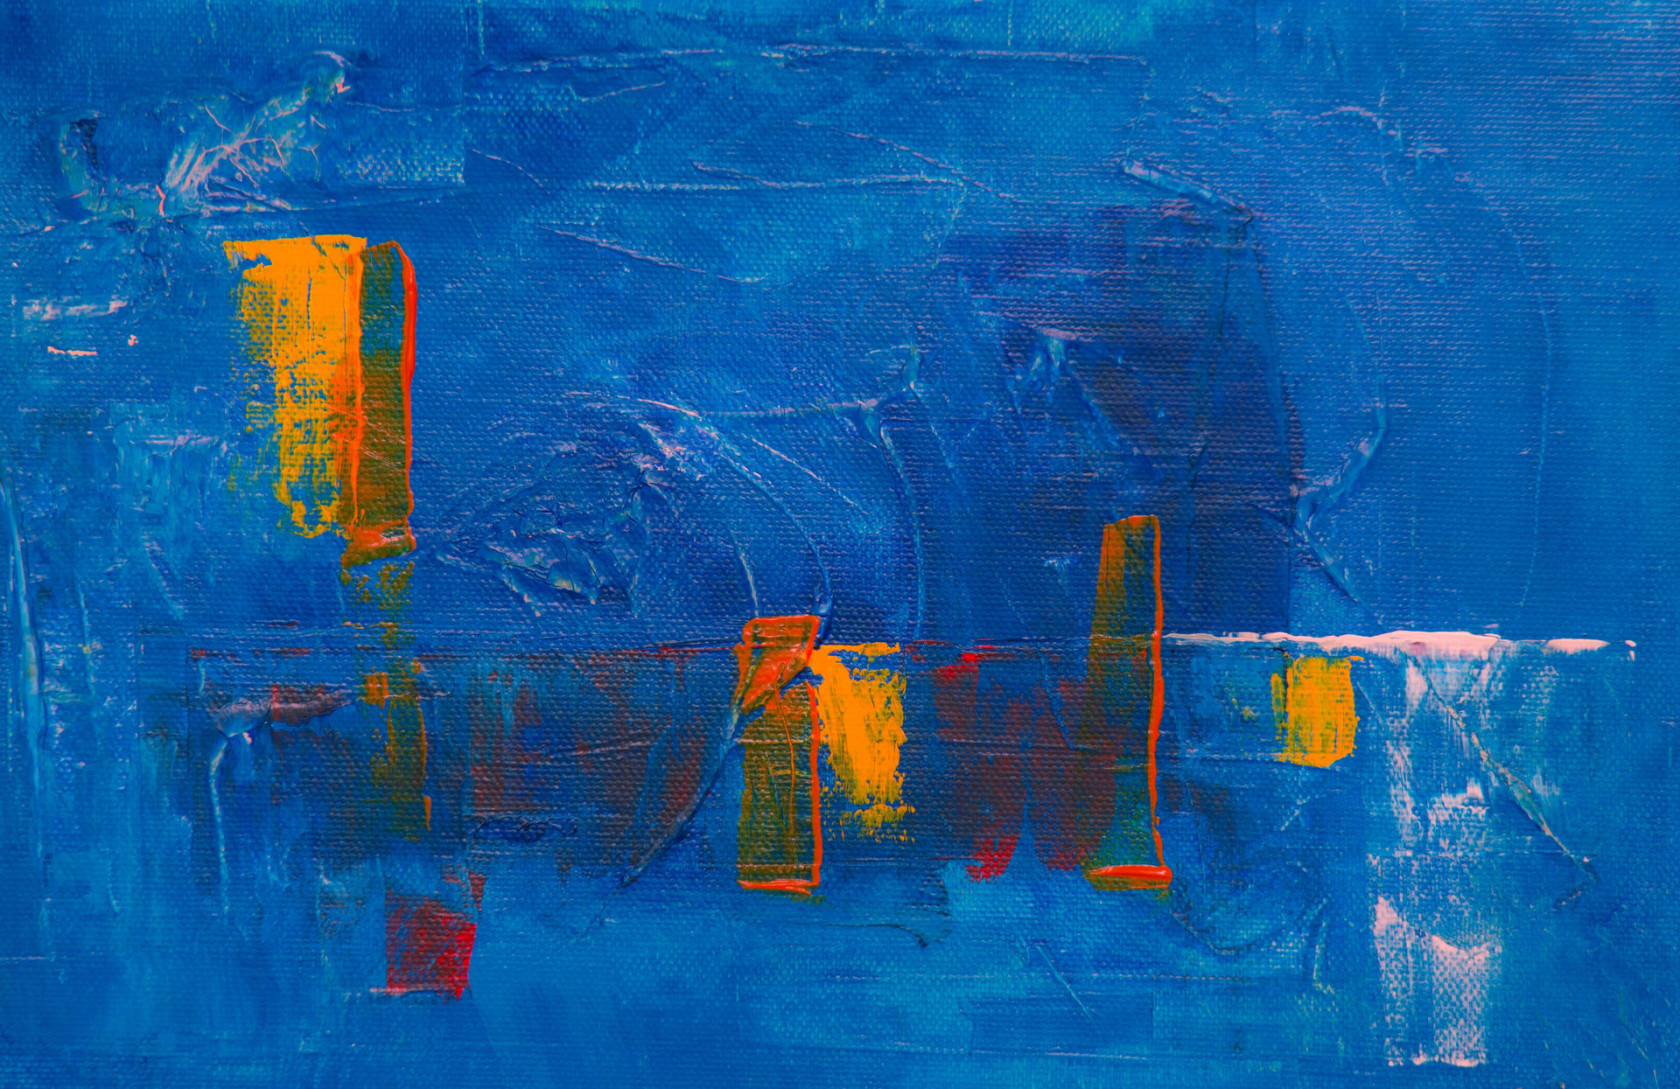 abstract-abstract-painting-art-1328486.jpg